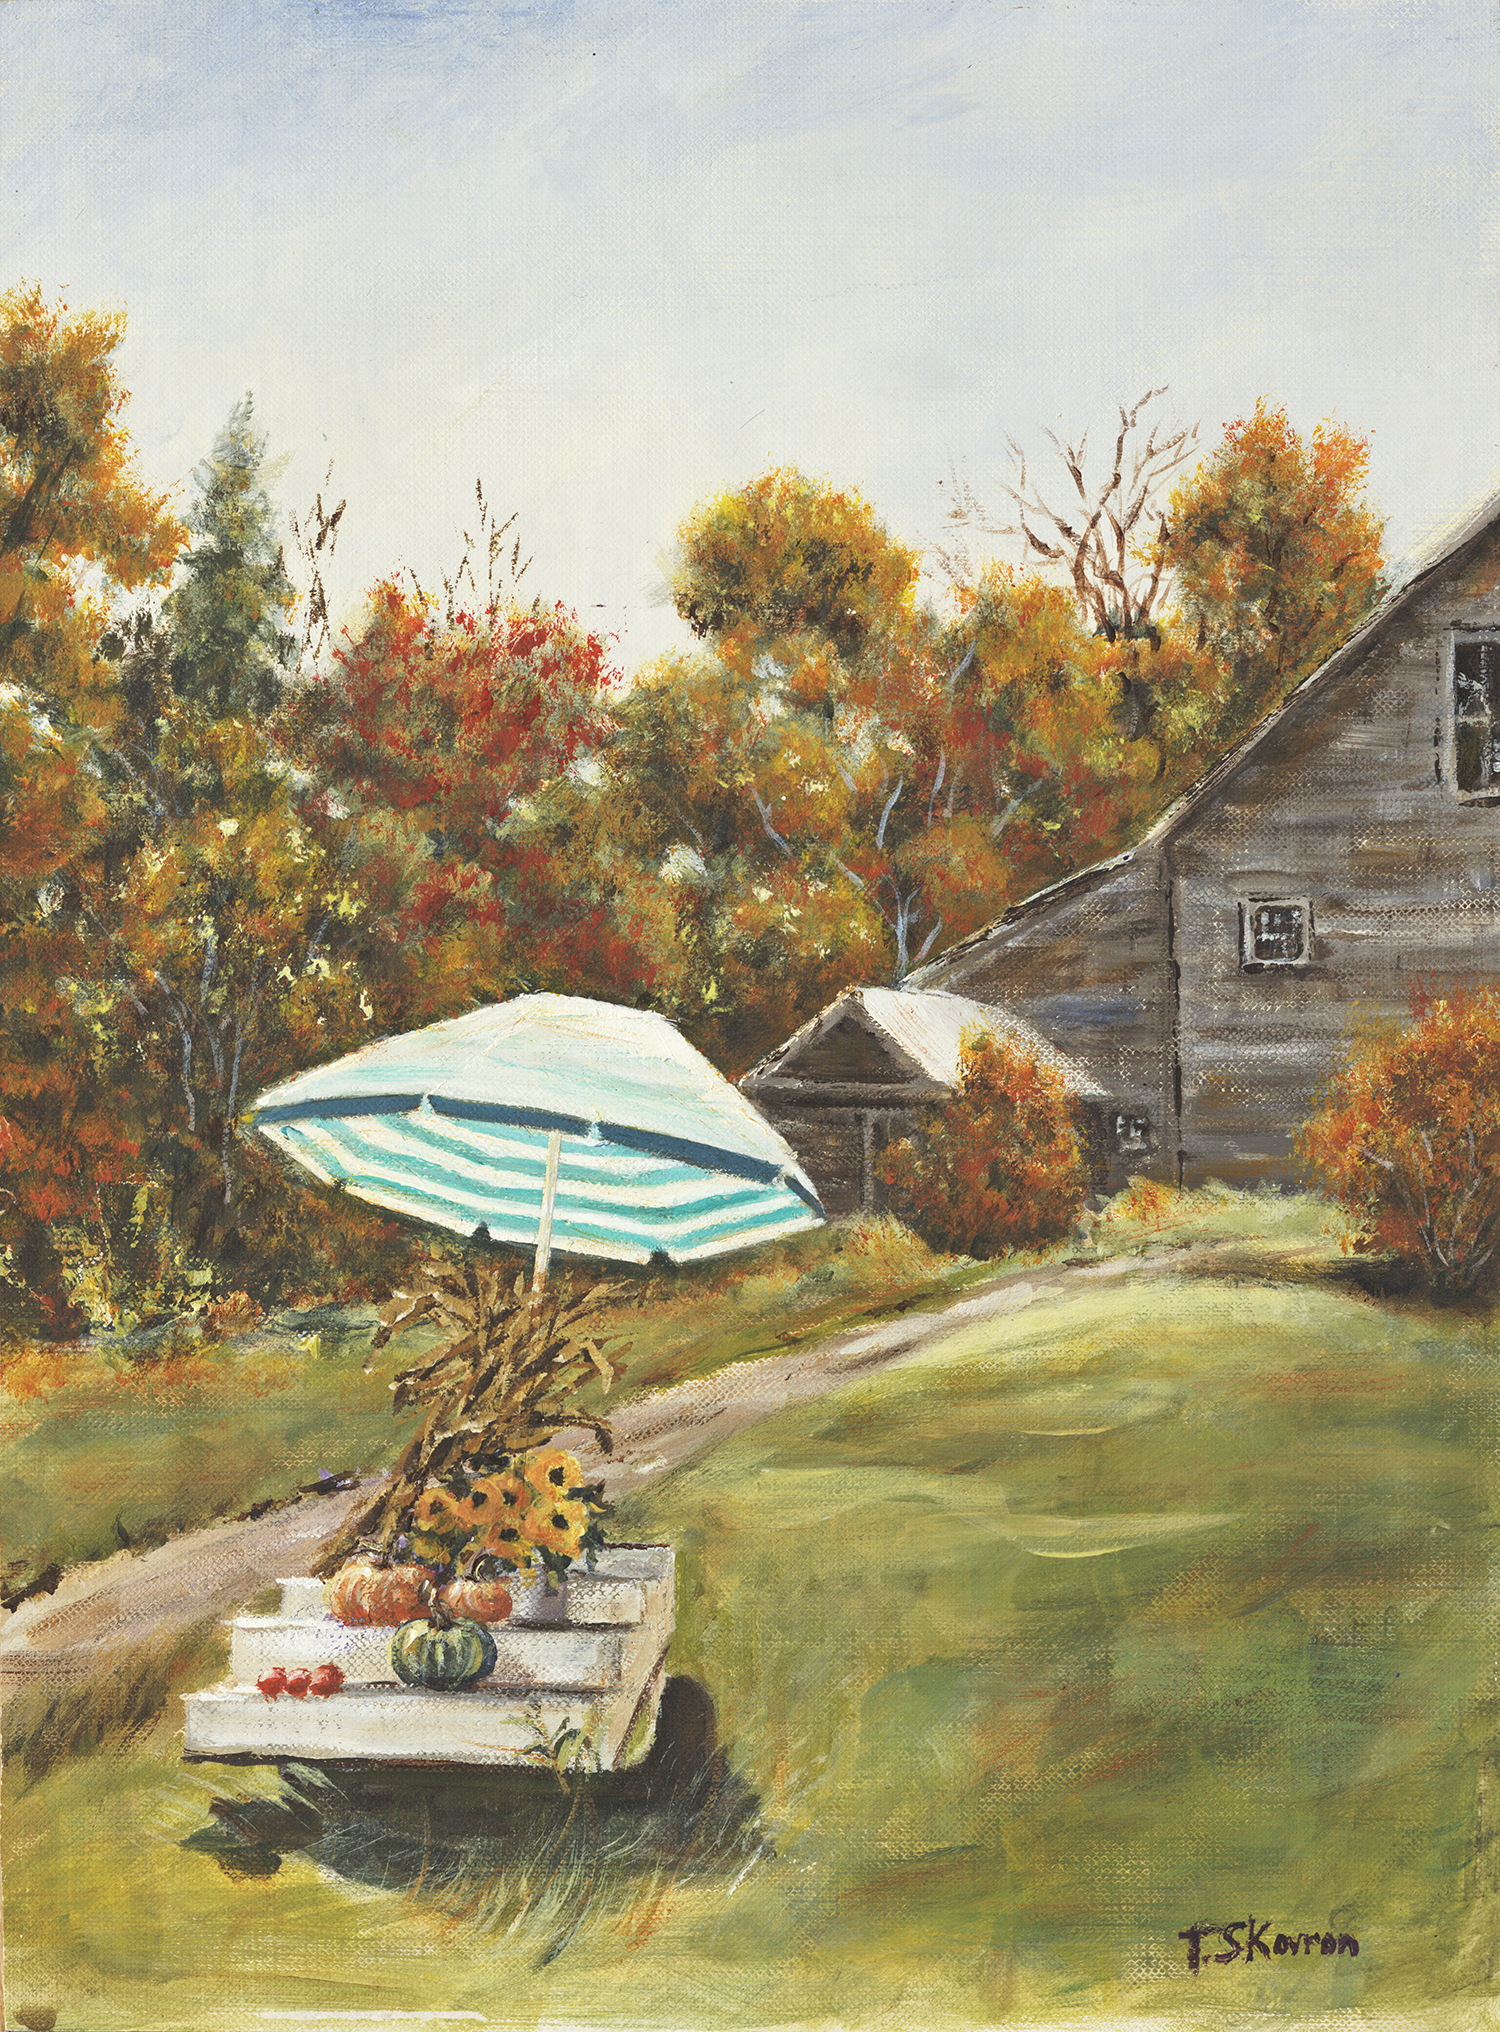 "Copy of Copy of Roadside Farm Stand - Kensington, NH, 9"" x 12""  Acrylic on canvas panel in 3.5""W black frame"